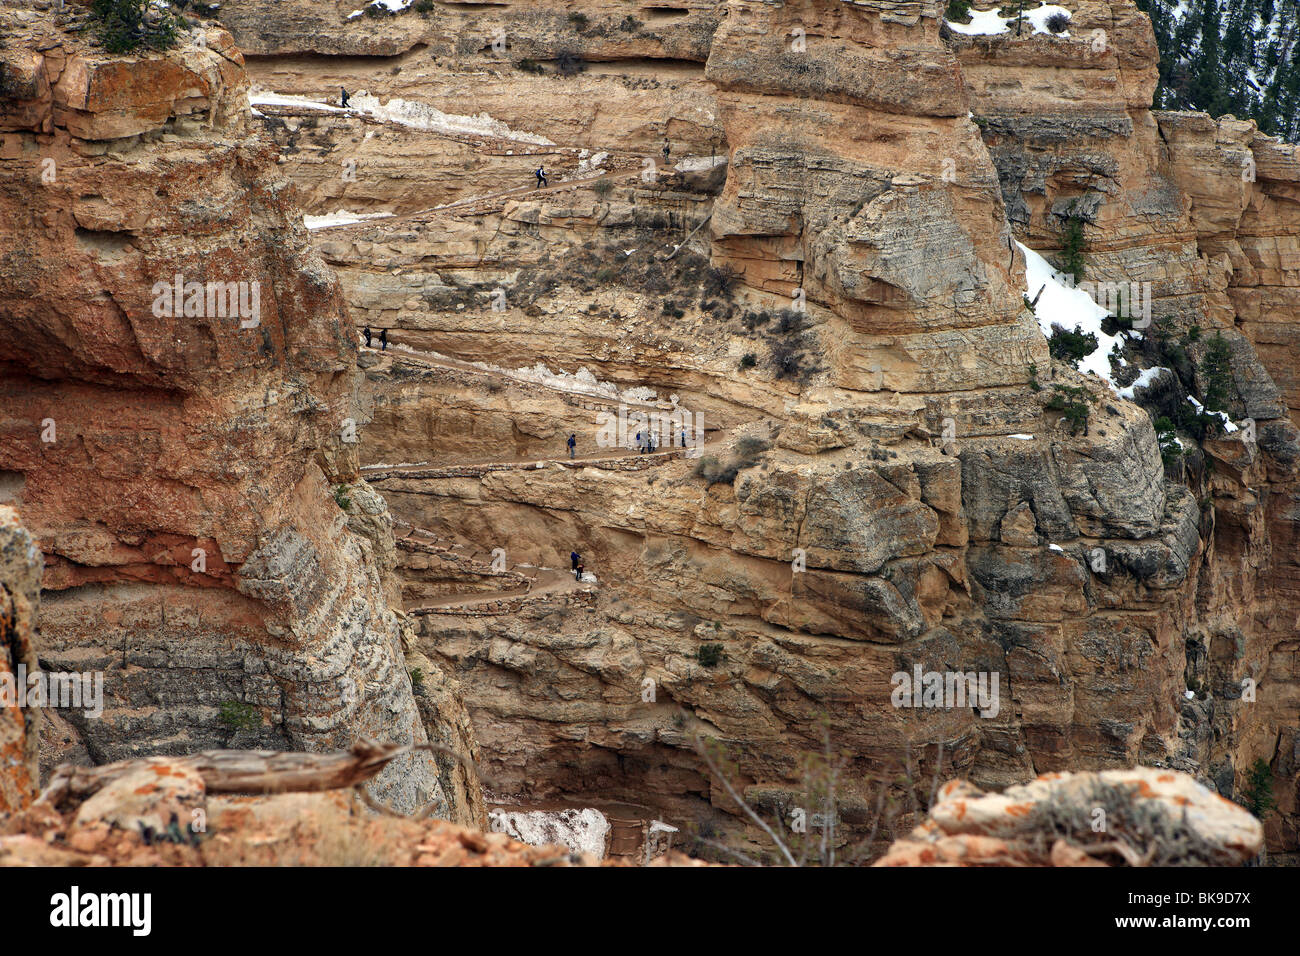 Hikers on the Kaibab Trail in the Grand Canyon National Park Arizona USA - Stock Image